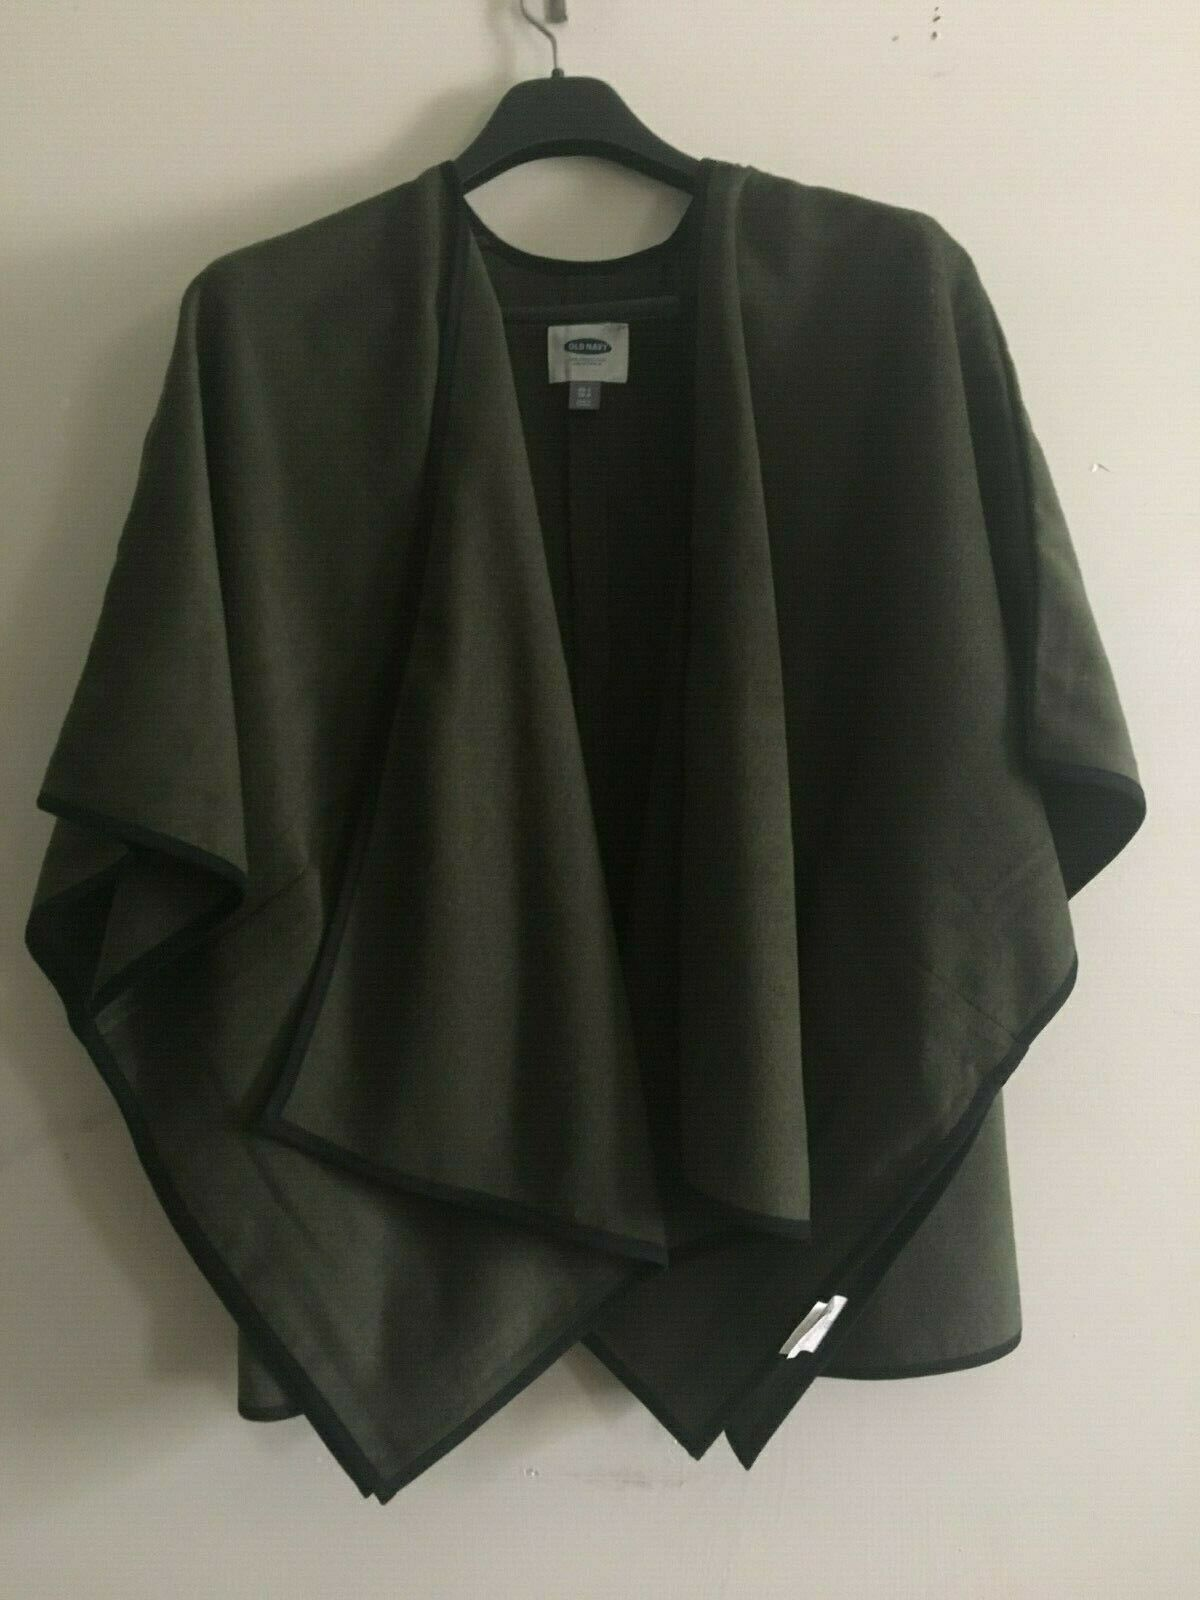 Old Navy San Francisco Cape Flap Olive Cardigan Size XS-S TP-P Sweater Women